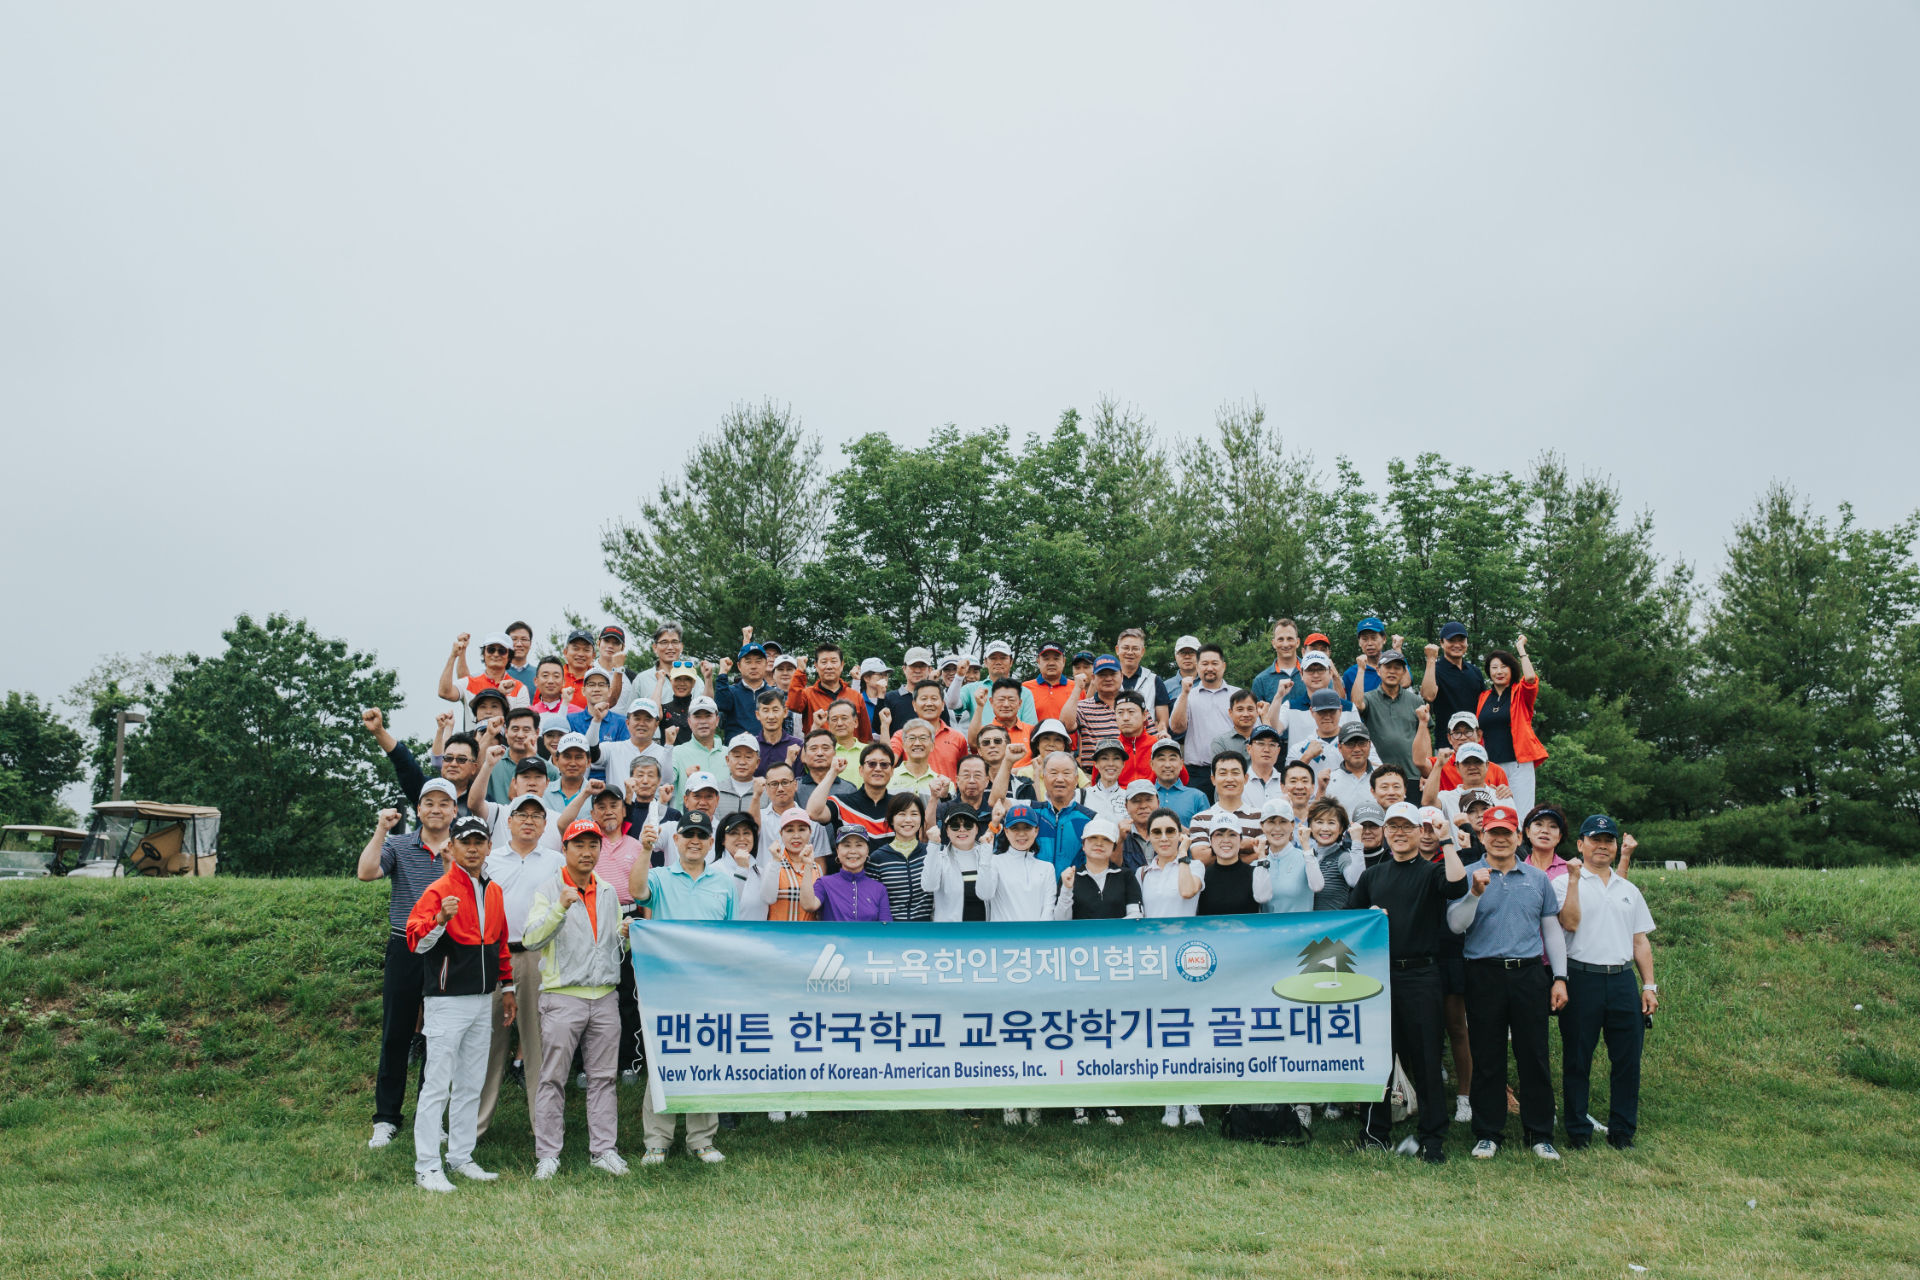 https://nykbi.com/new/wp-content/uploads/2019/07/190619-Scholarship-Fundraising-Golf-Tournament-016.jpg